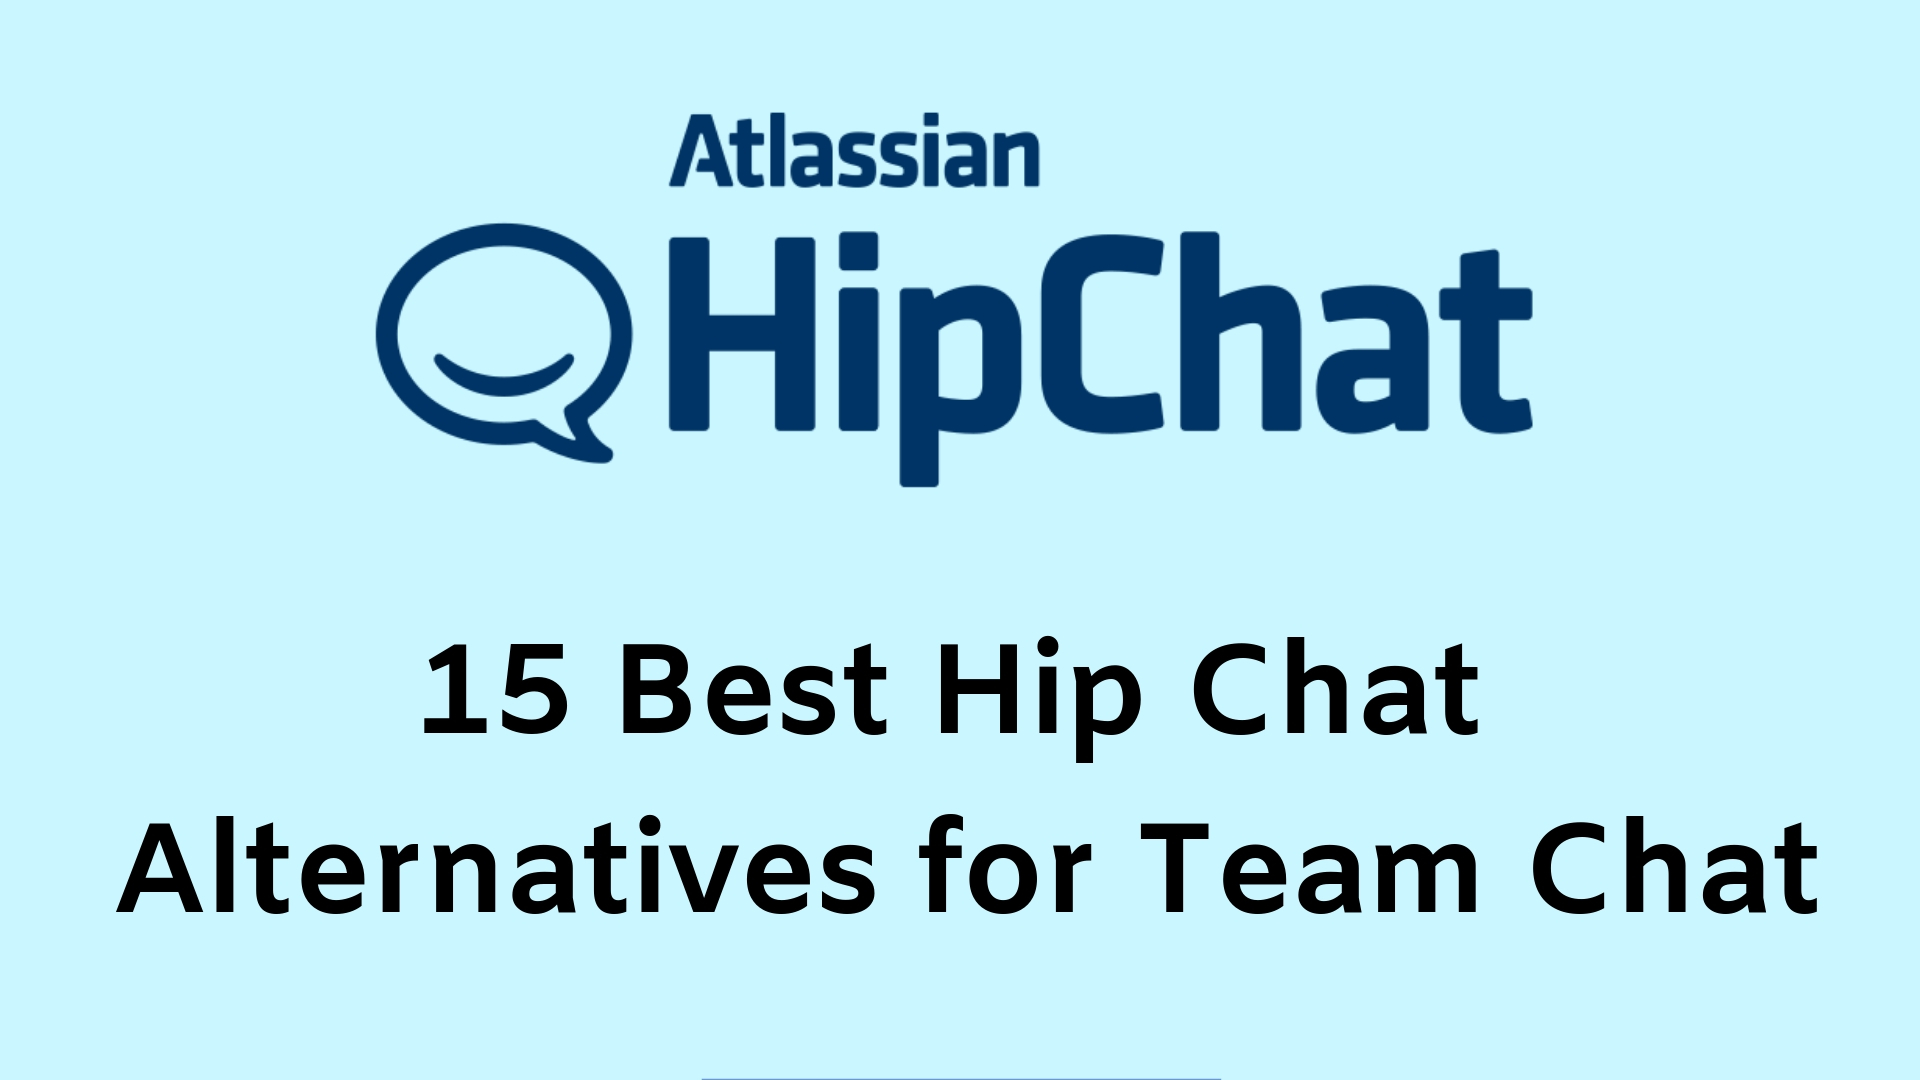 15 Best Hip Chat Alternatives for Team Chat